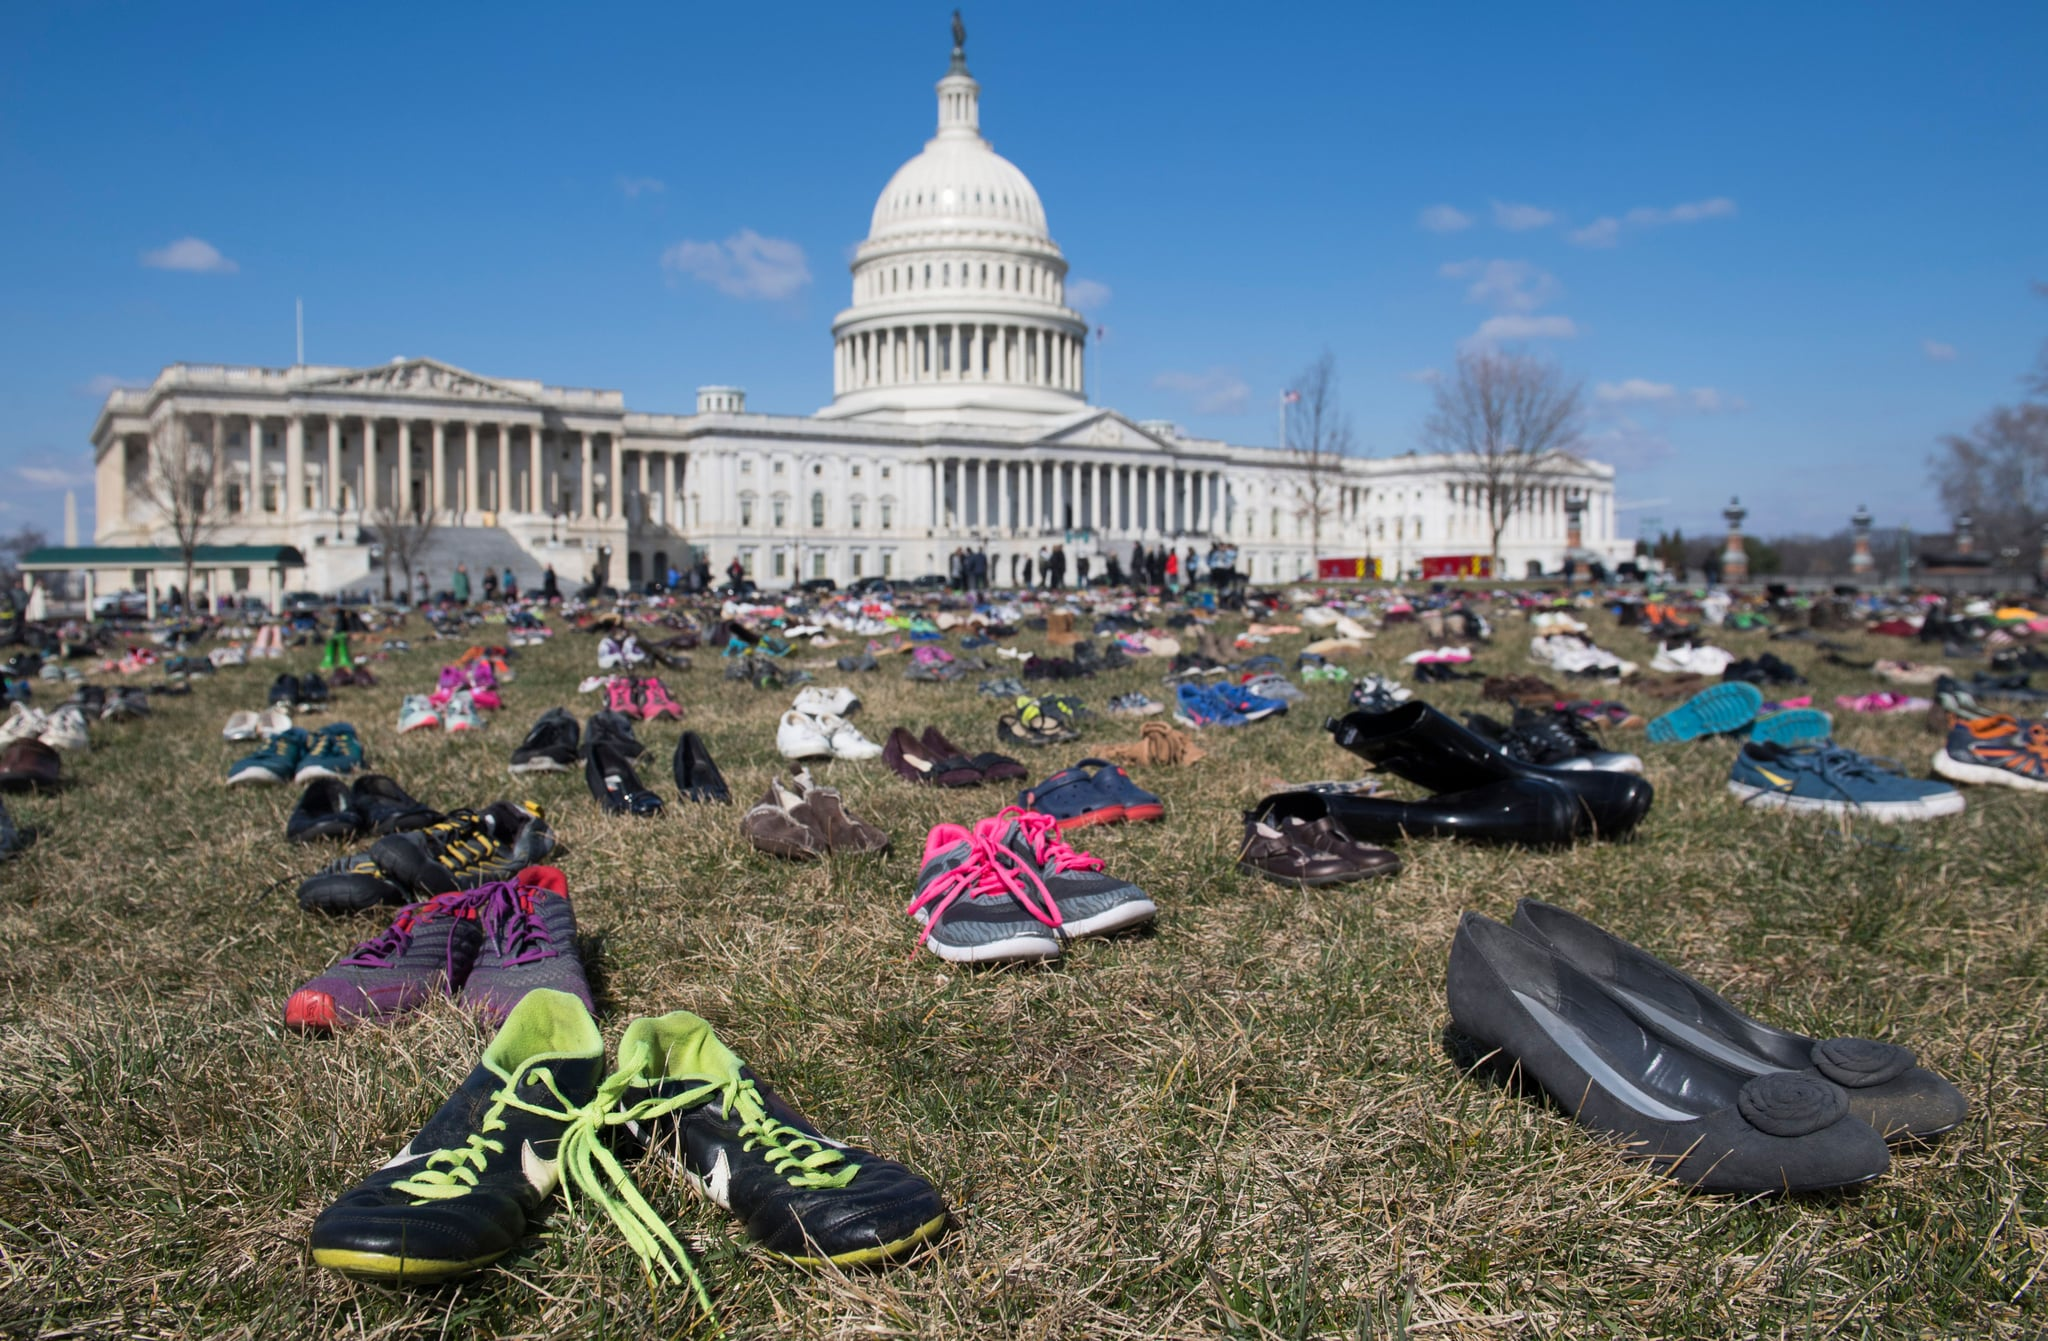 The lawn outside the US Capitol is covered with 7,000 pairs of empty shoes to memorialize the 7,000 children killed by gun violence since the Sandy Hook school shooting, in a display organised by the global advocacy group Avaaz, in Washington, DC, March 13, 2018. / AFP PHOTO / SAUL LOEB        (Photo credit should read SAUL LOEB/AFP/Getty Images)